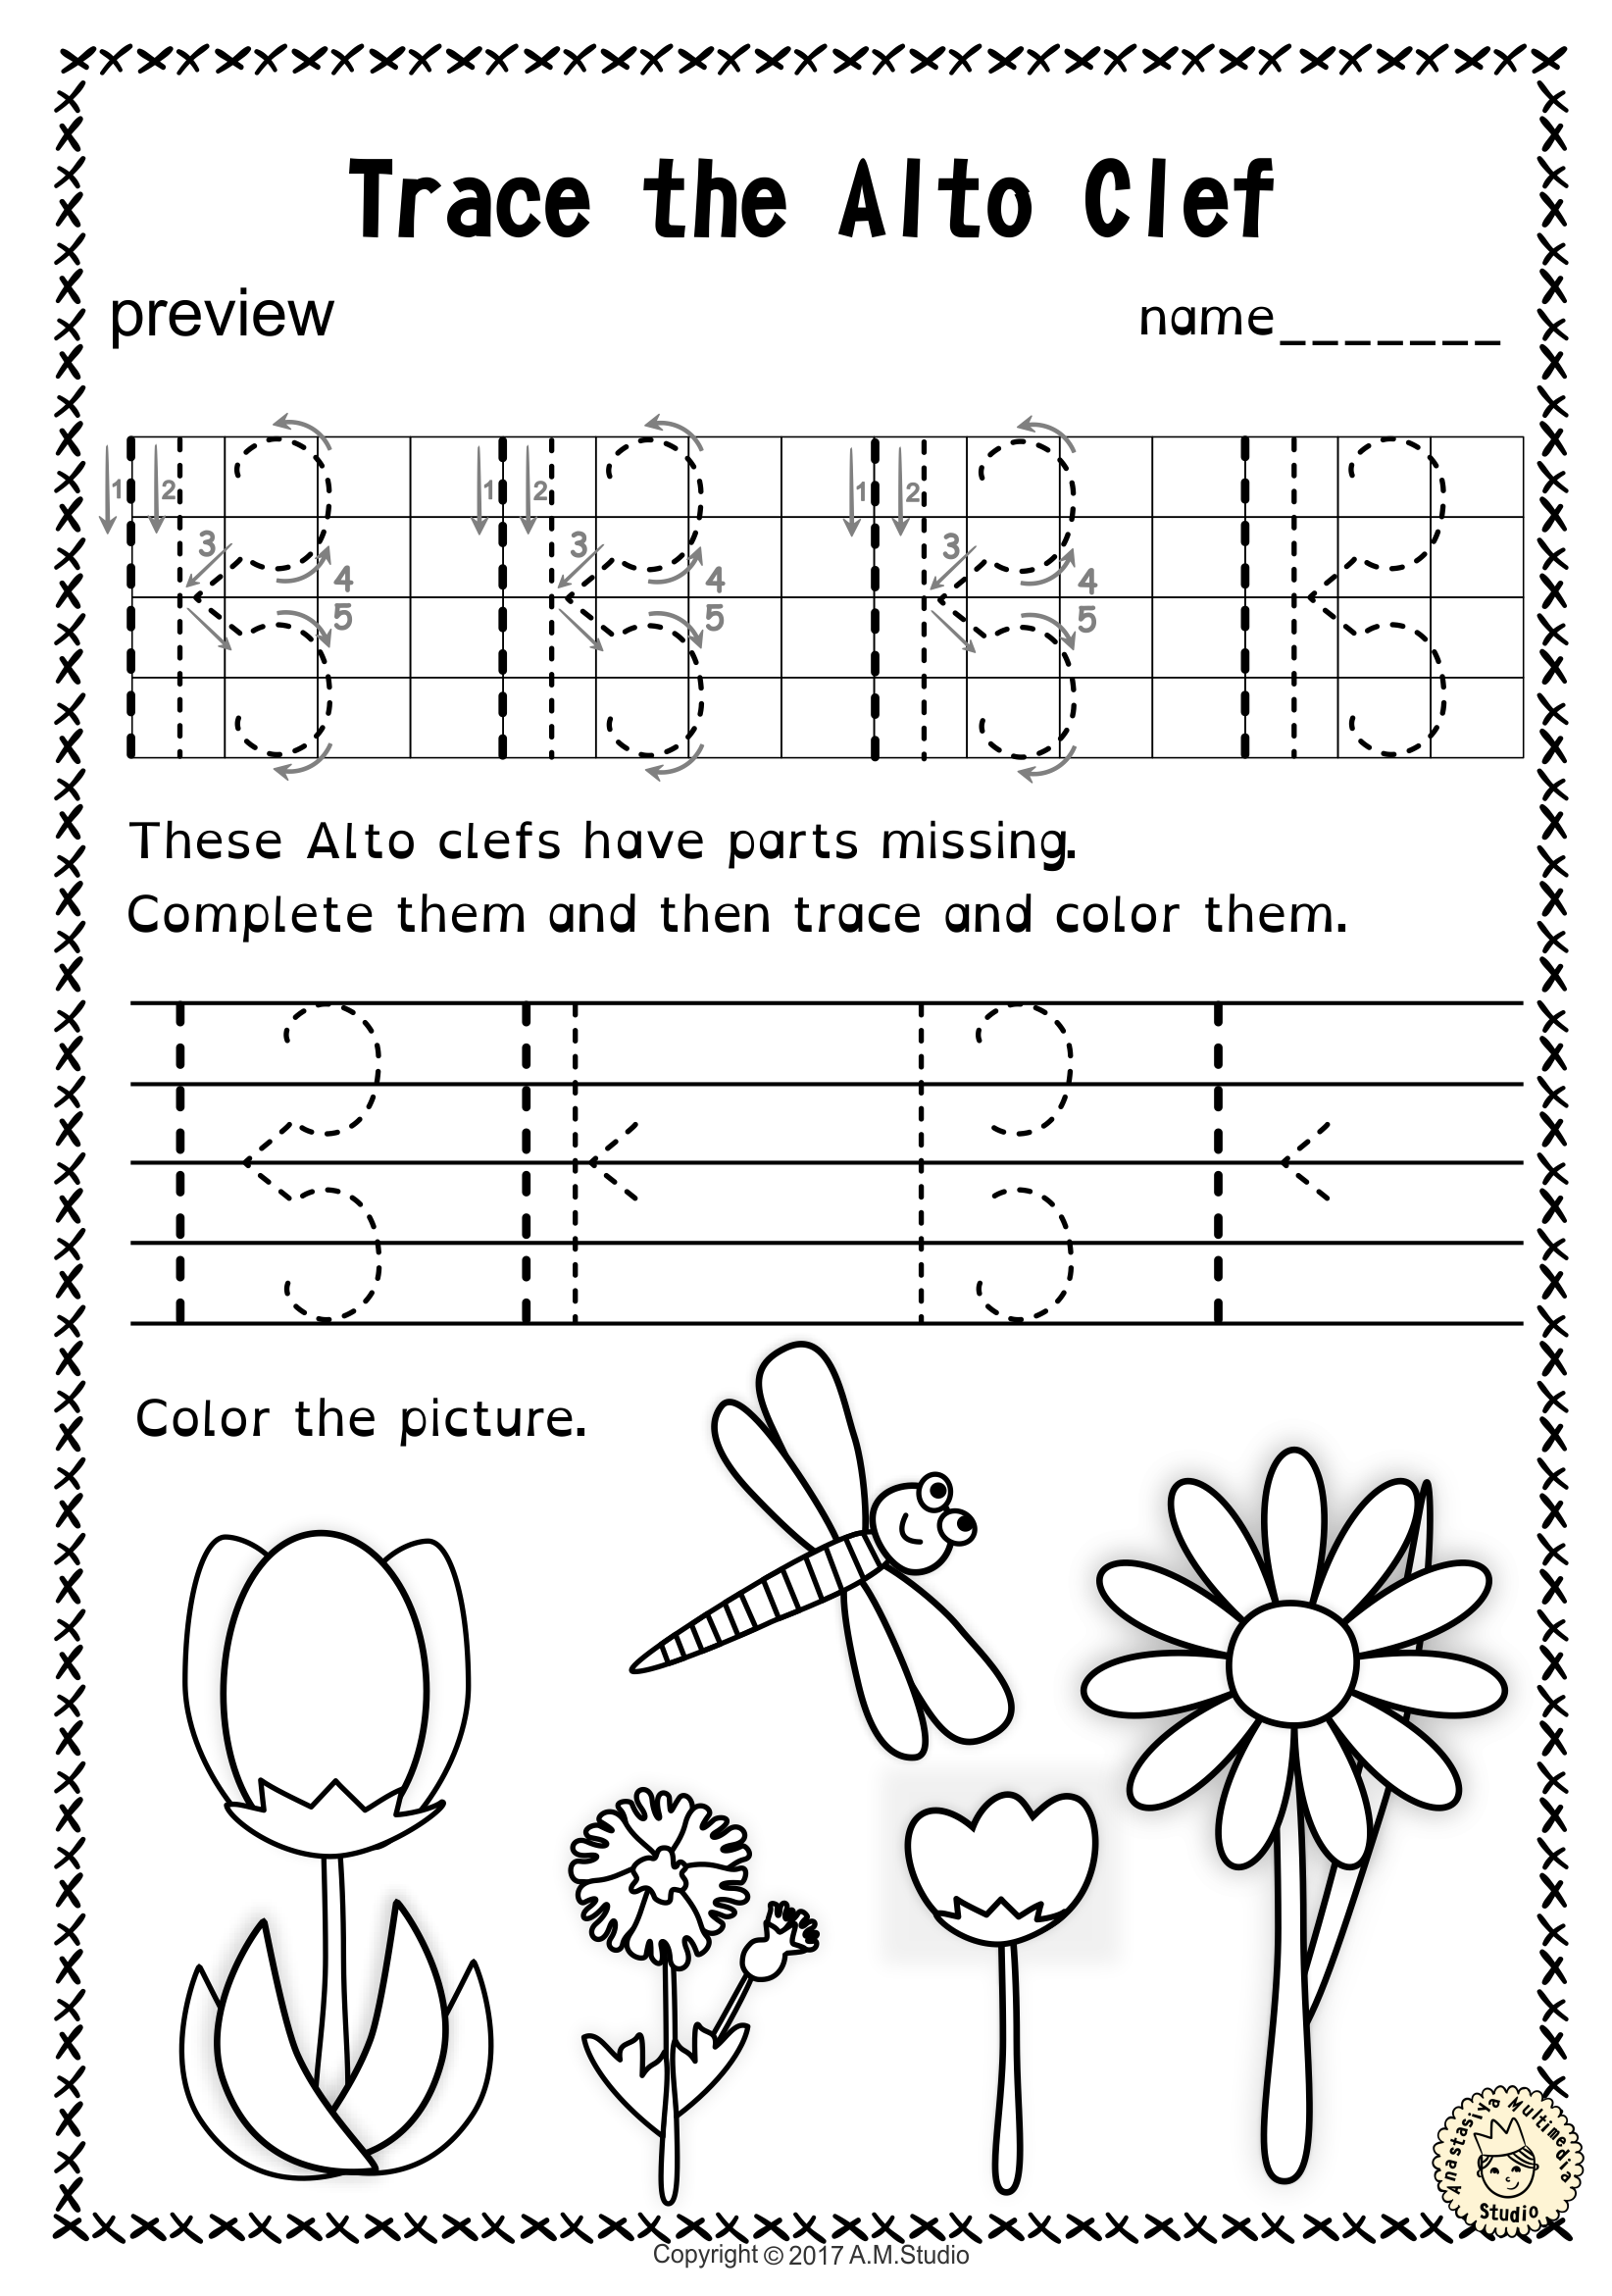 tracing music notes worksheets for spring music worksheets worksheets and student learning. Black Bedroom Furniture Sets. Home Design Ideas